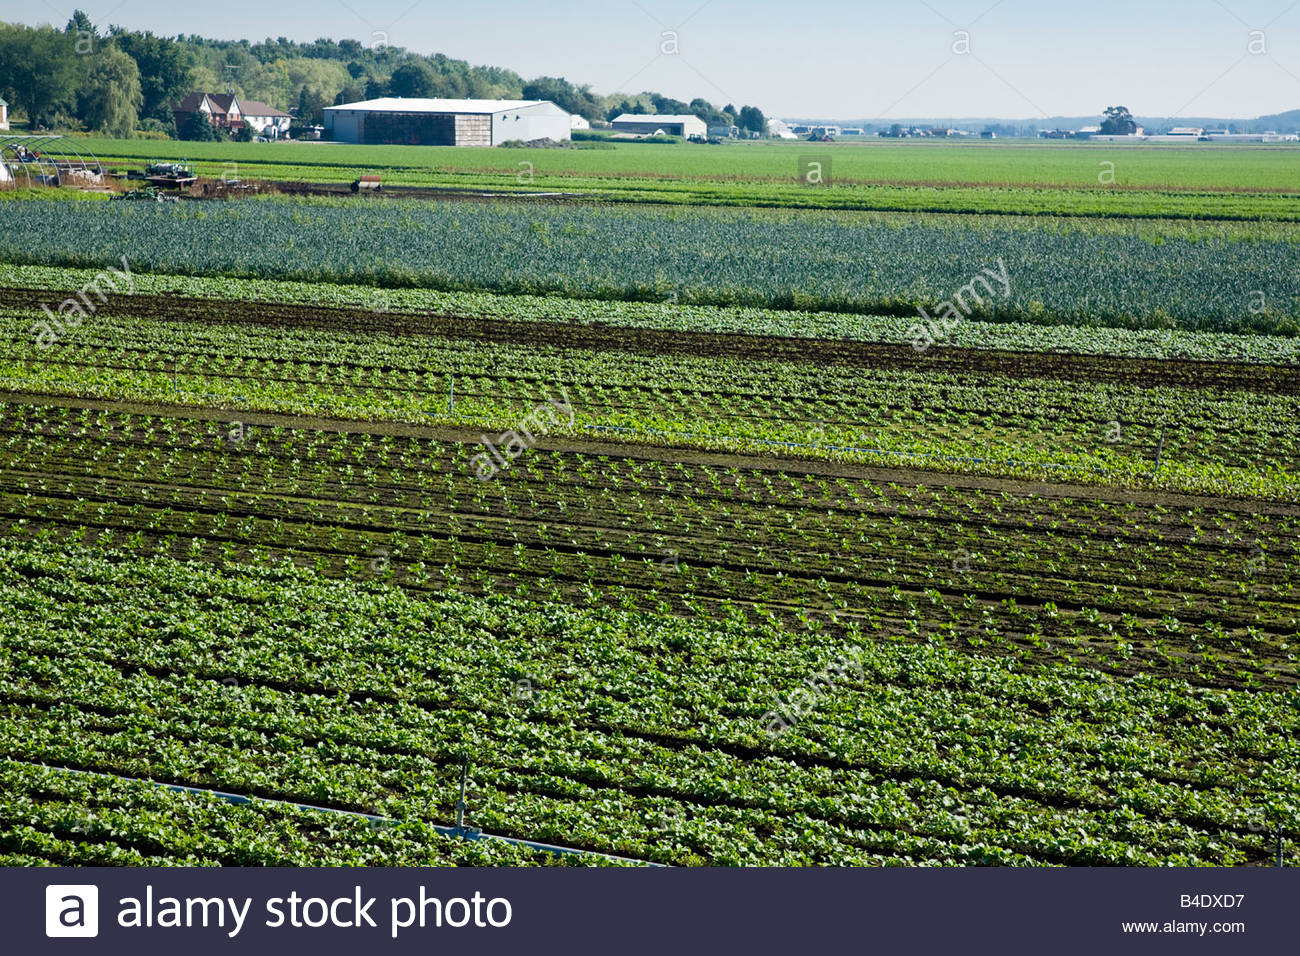 Vegetables in the market gardens of Holland Marsh near Bradford Ontario Canada - Stock Image